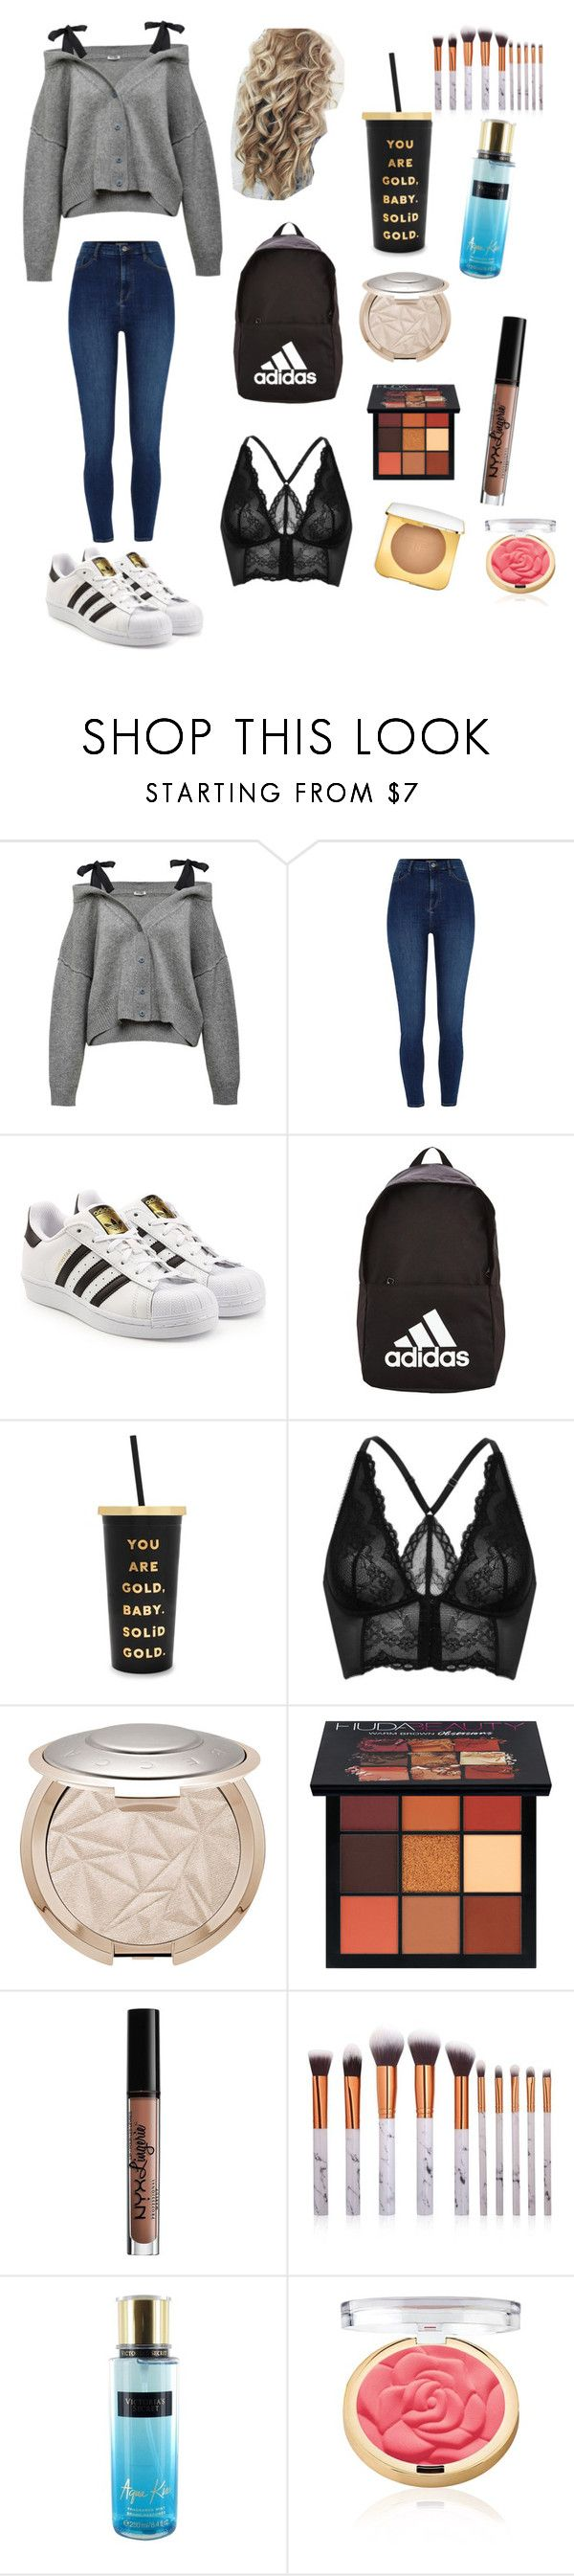 """Another aesthetic i aspire to be"" by iamnoodles ❤ liked on Polyvore featuring adidas Originals, adidas, ban.do, Gossard, Huda Beauty, Charlotte Russe and Victoria's Secret"